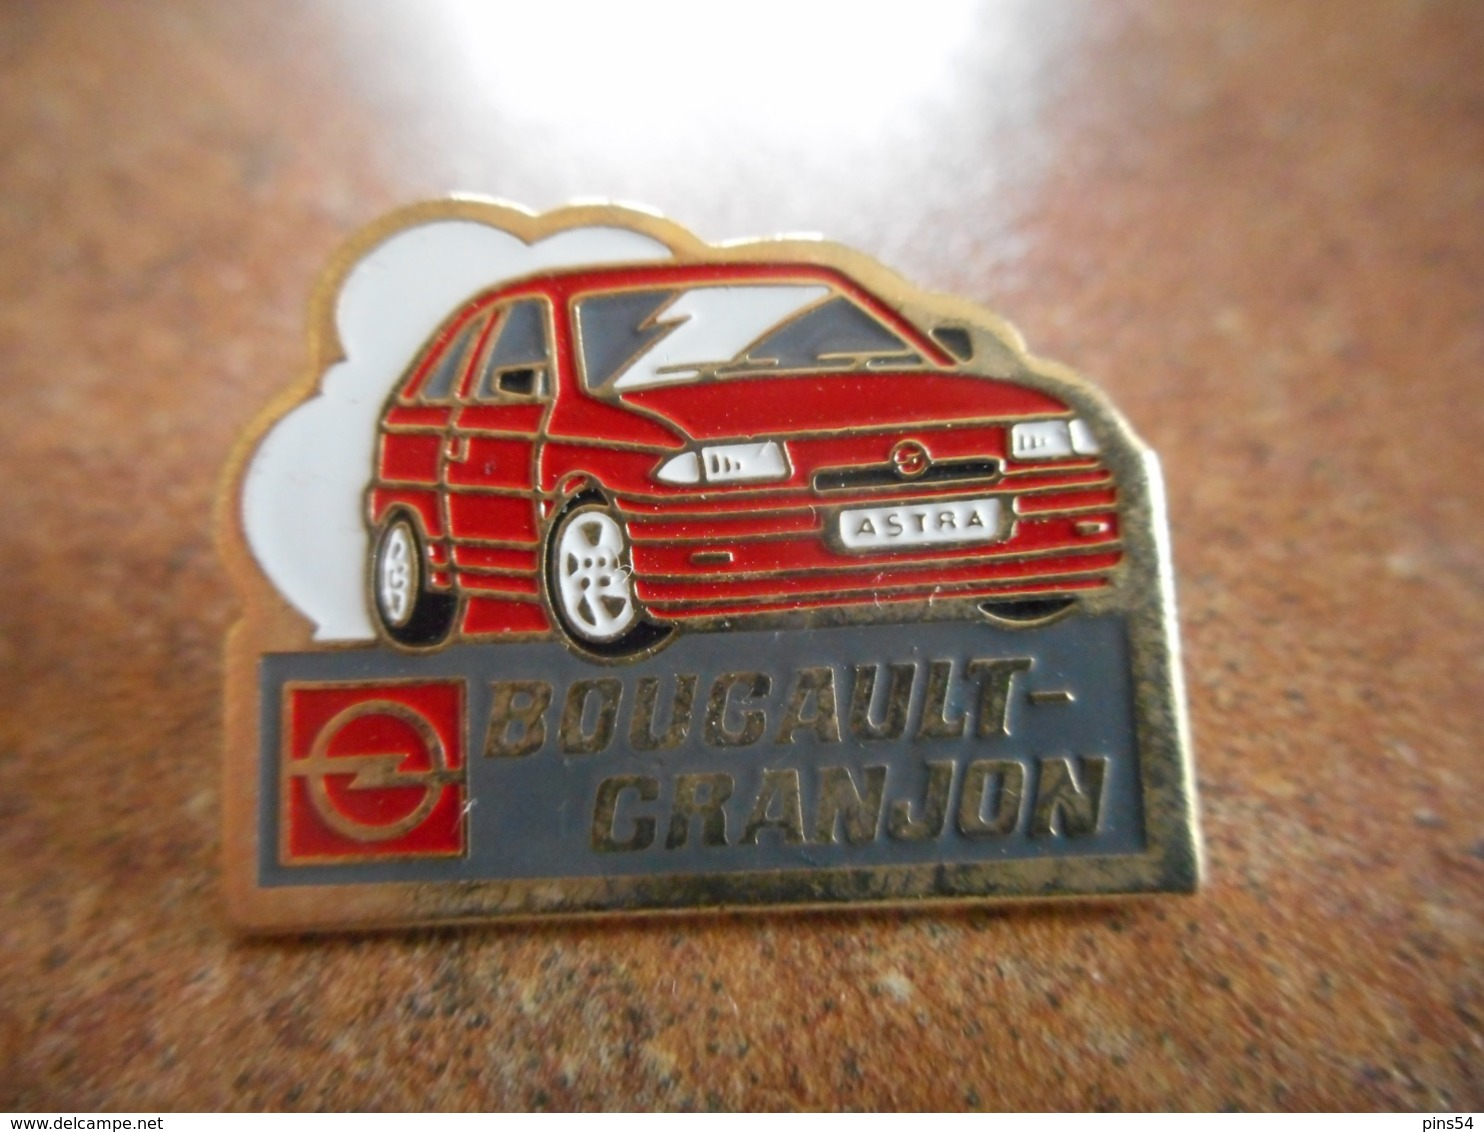 A044 -- Pin's Opel Astra Bougault Granjon -- Exclusif Sur Delcampe - Opel